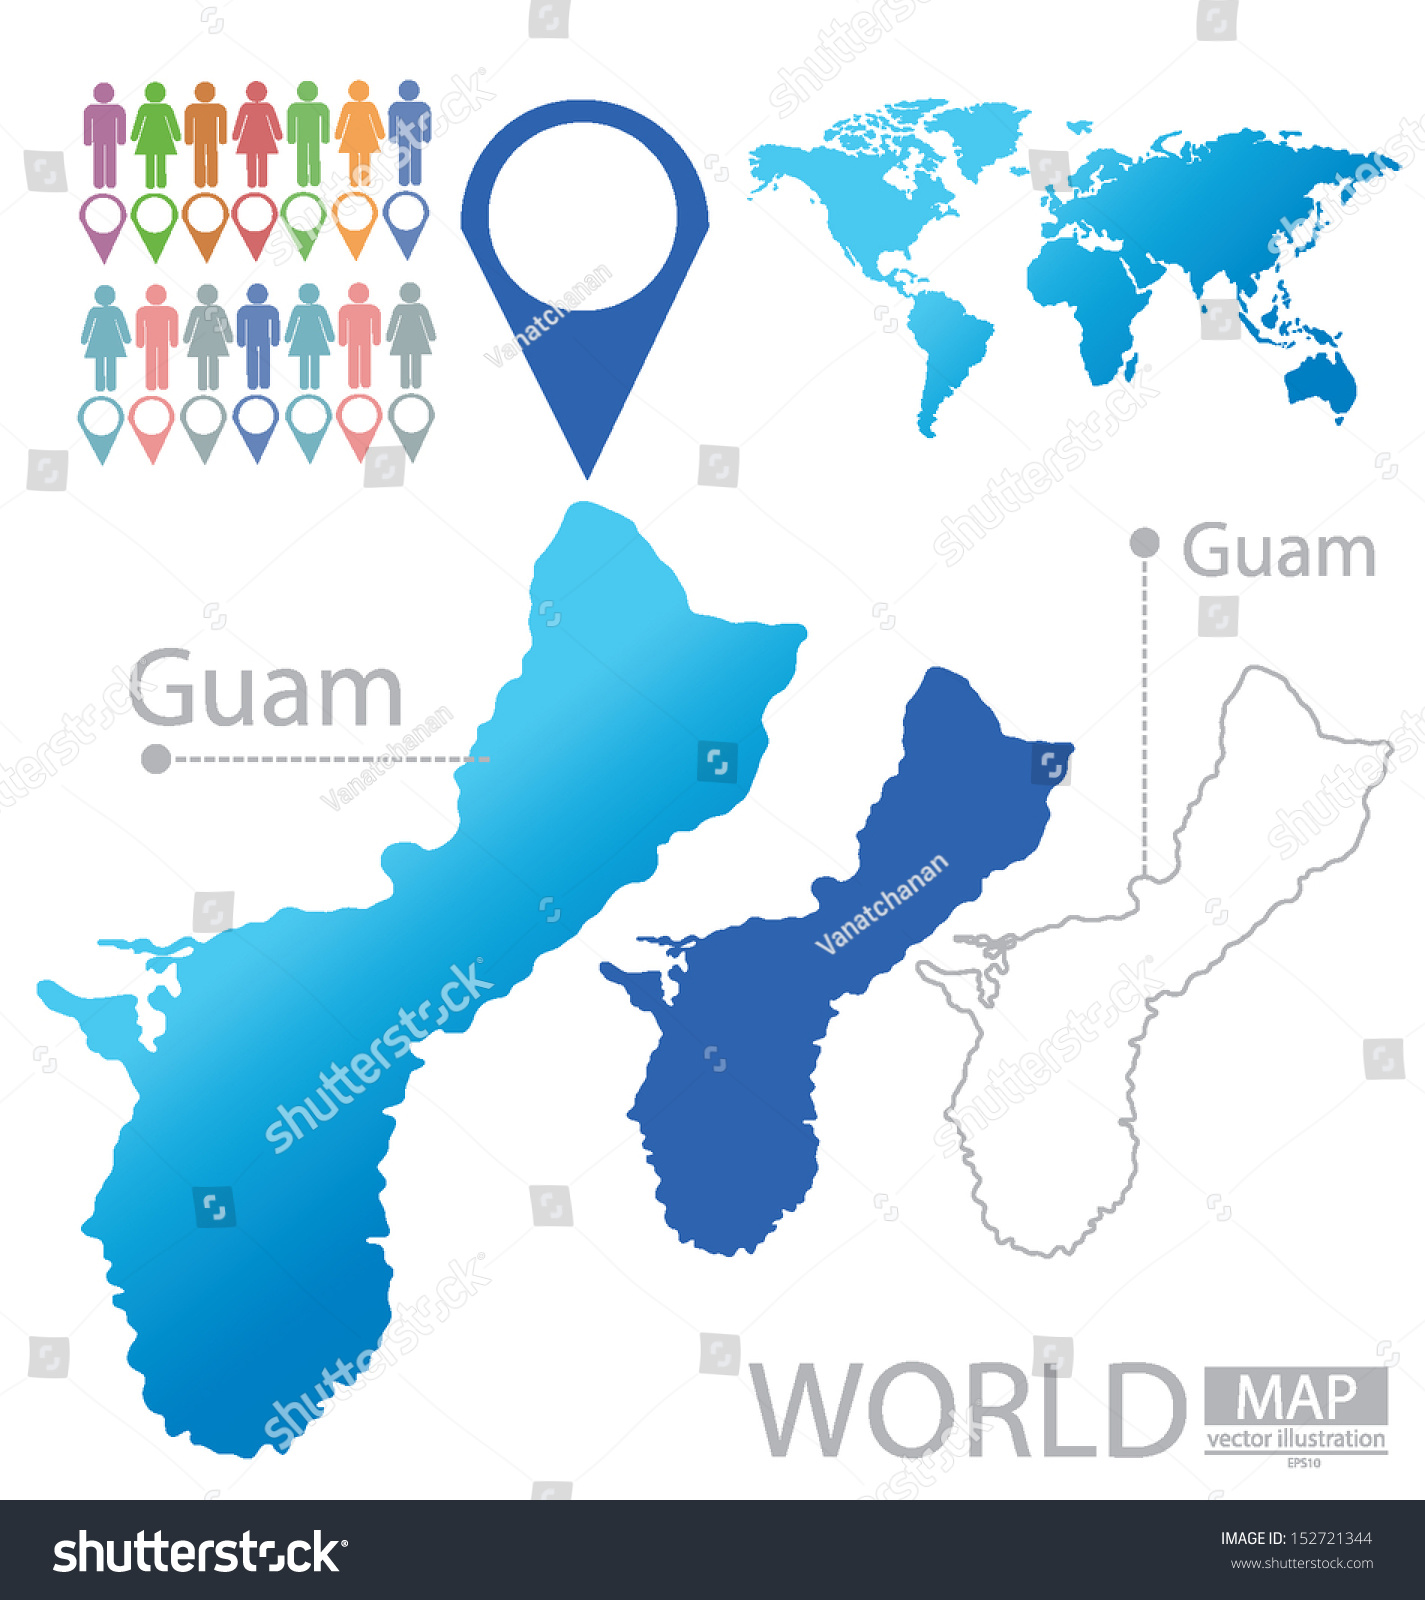 Guam World Map us airways route map copper mountain trail map